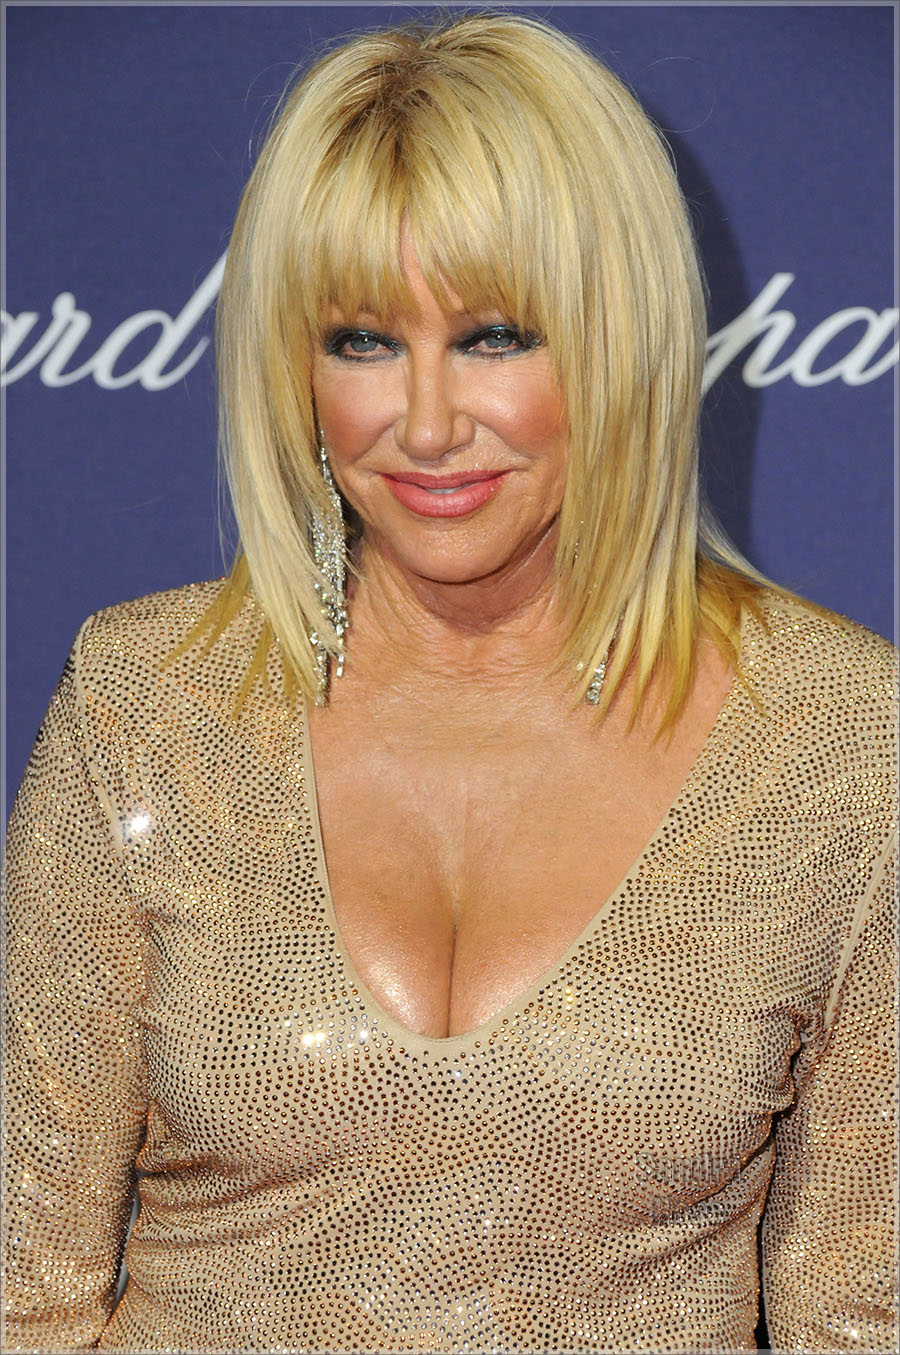 Suzanne Somers in Palm Springs | Sandra Rose View Image